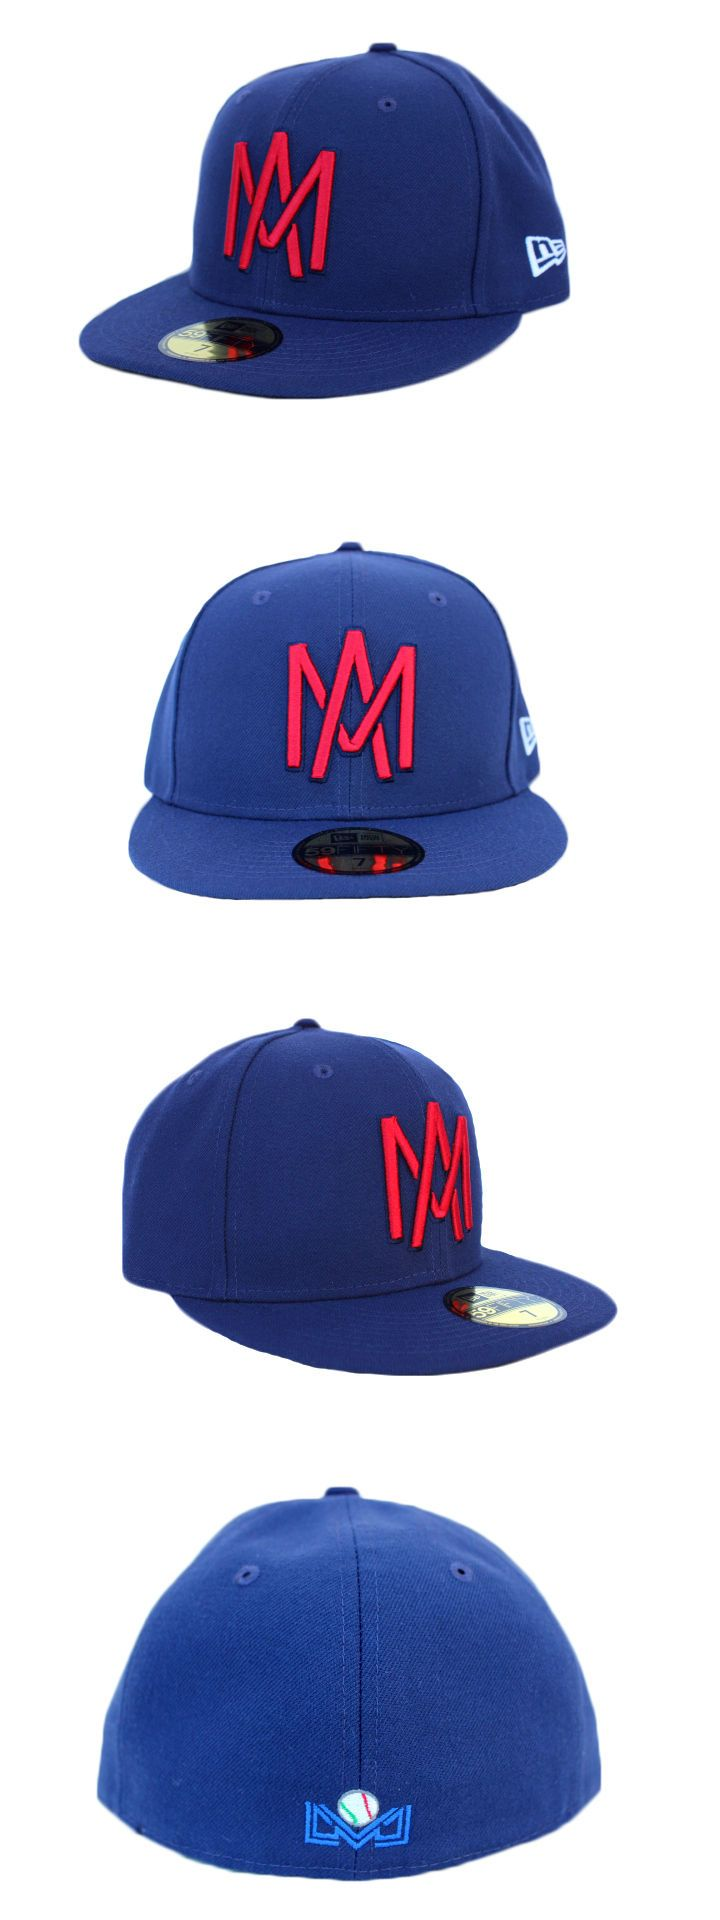 Baseball-Other 204: Aguilas De Mexicali Lmb New Era 59Fifty Navy -> BUY IT NOW ONLY: $49.95 on eBay!